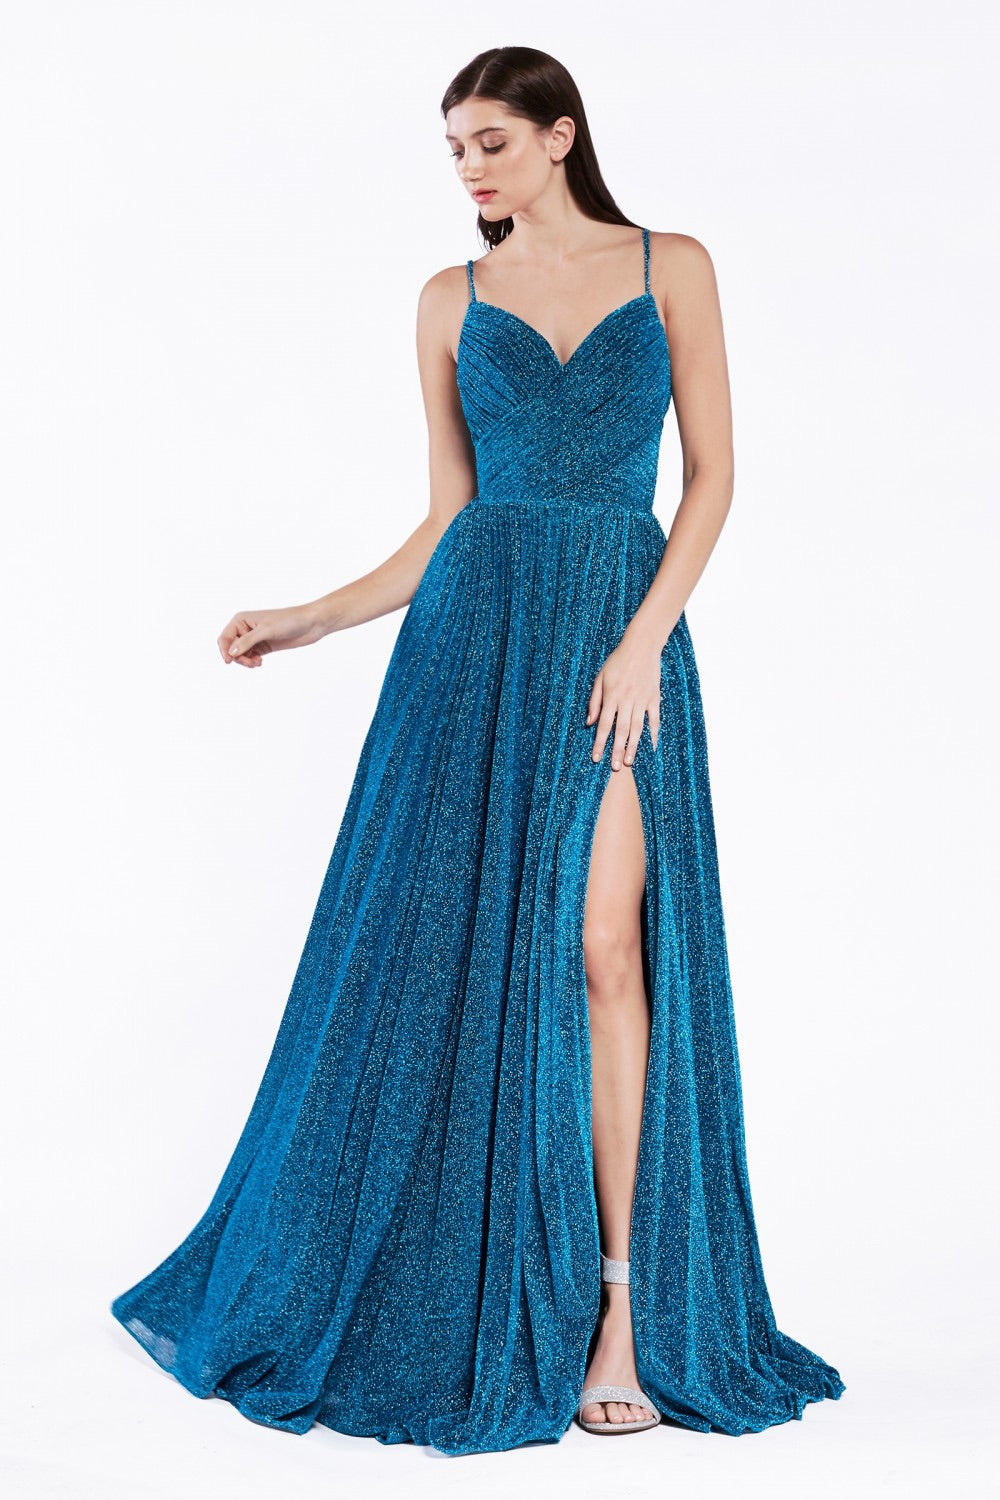 Cinderella Divine CJ534 A-Line Evening Dress - CYC Boutique